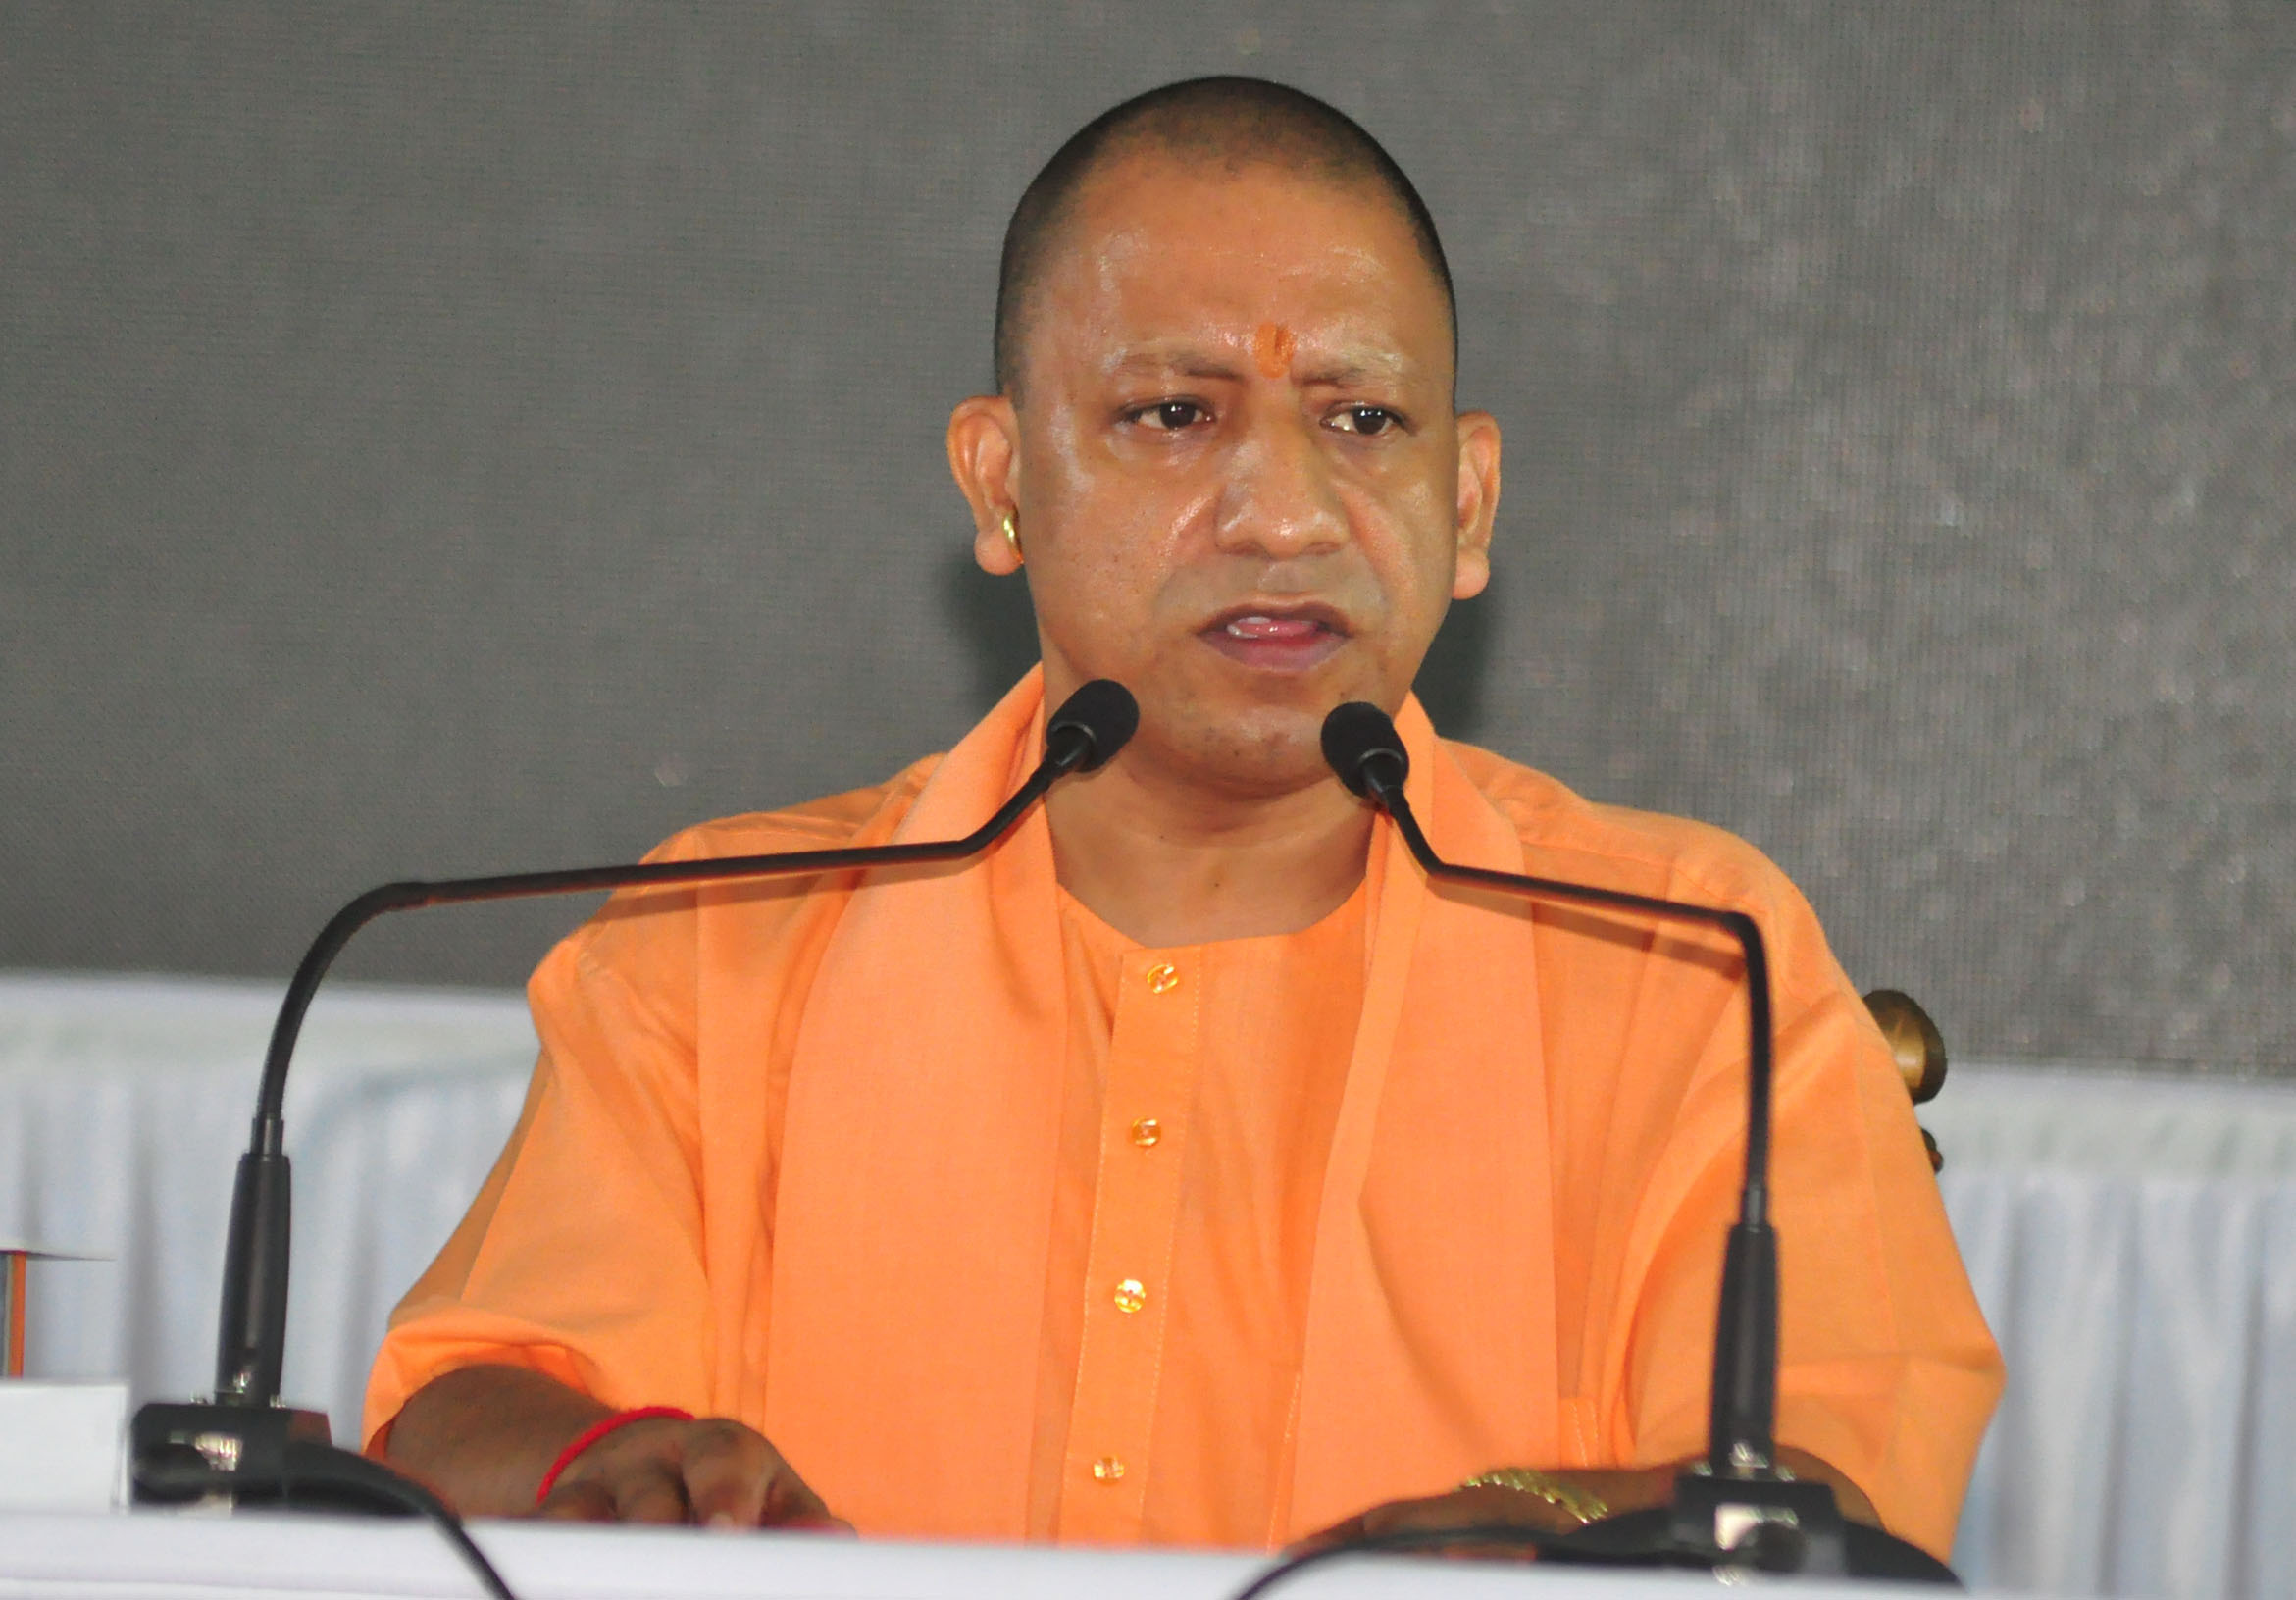 Uttar Pradesh Chief Minister Yogi Adityanath addressing press conference on completing 30th months in his office, at CM residence in Lucknow on Thursday. (UNI)